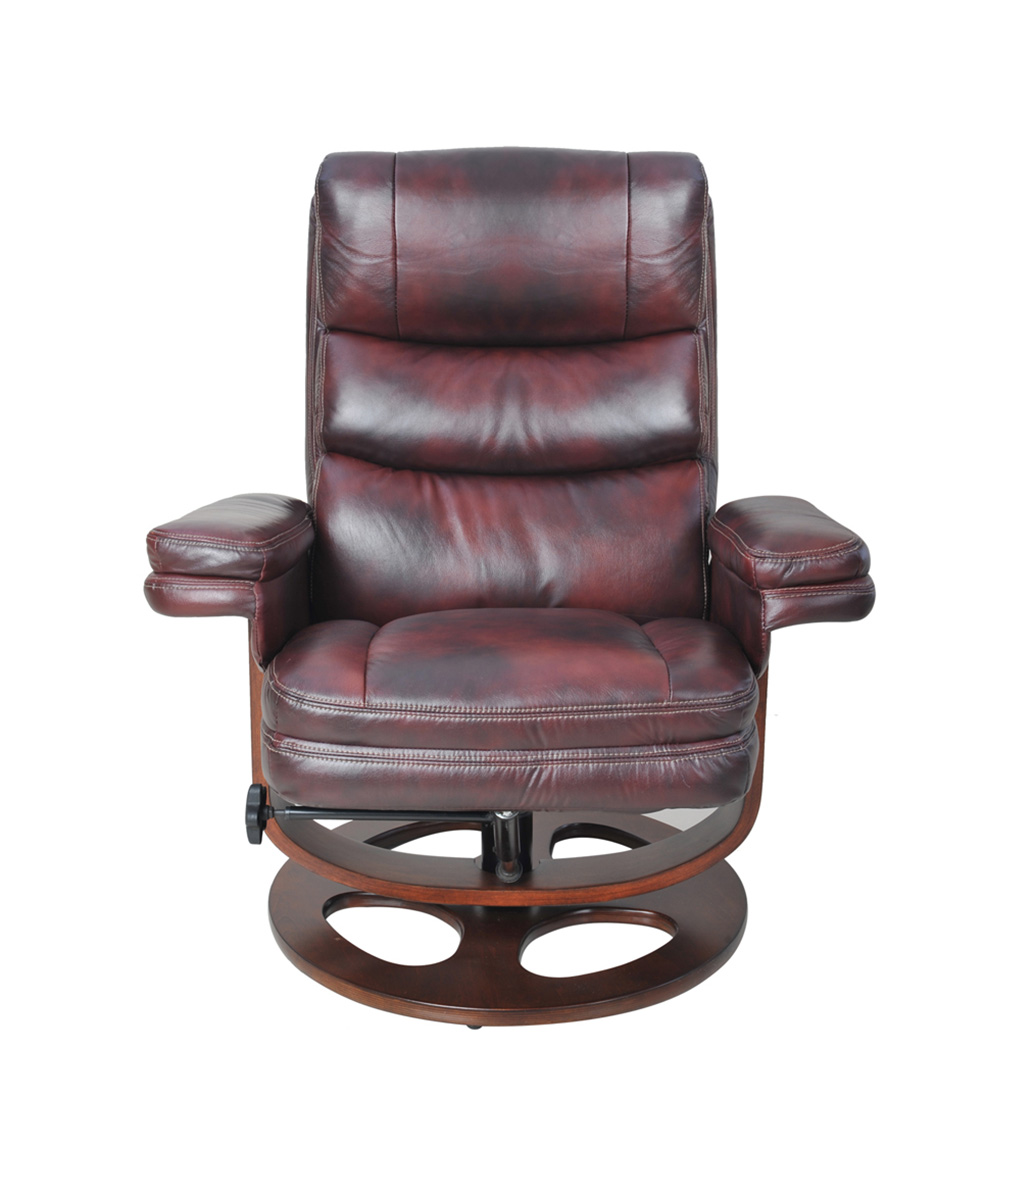 Barcalounger Bella Pedestal Recliner Chair and Ottoman - Plymouth Mahogany/Leather Match